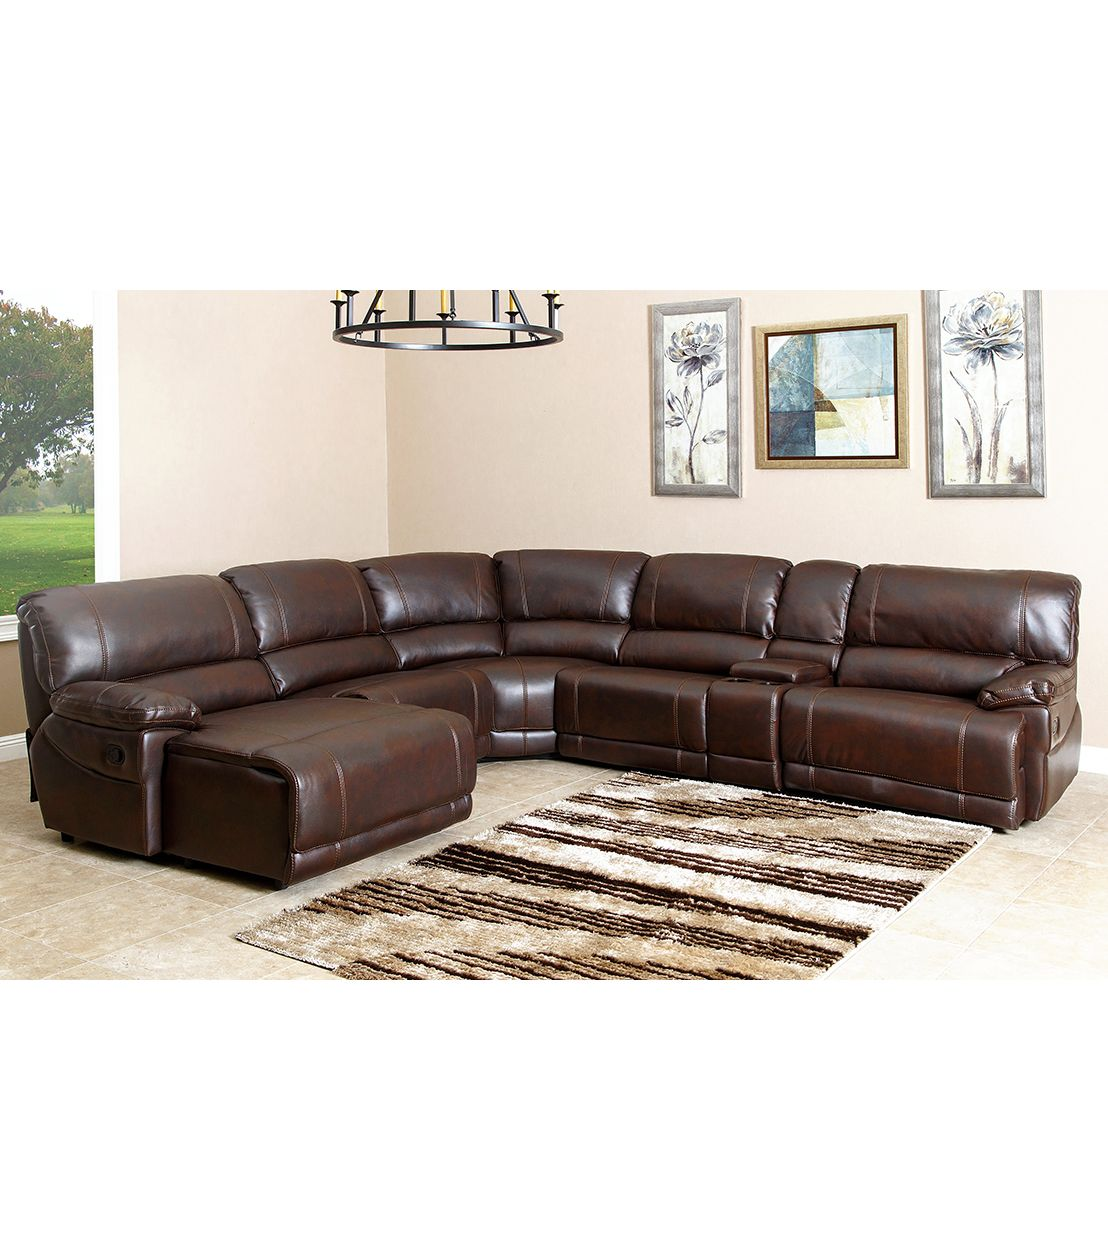 Excellent Abbyson Living Cooper Leather Sectional With Reclining Caraccident5 Cool Chair Designs And Ideas Caraccident5Info